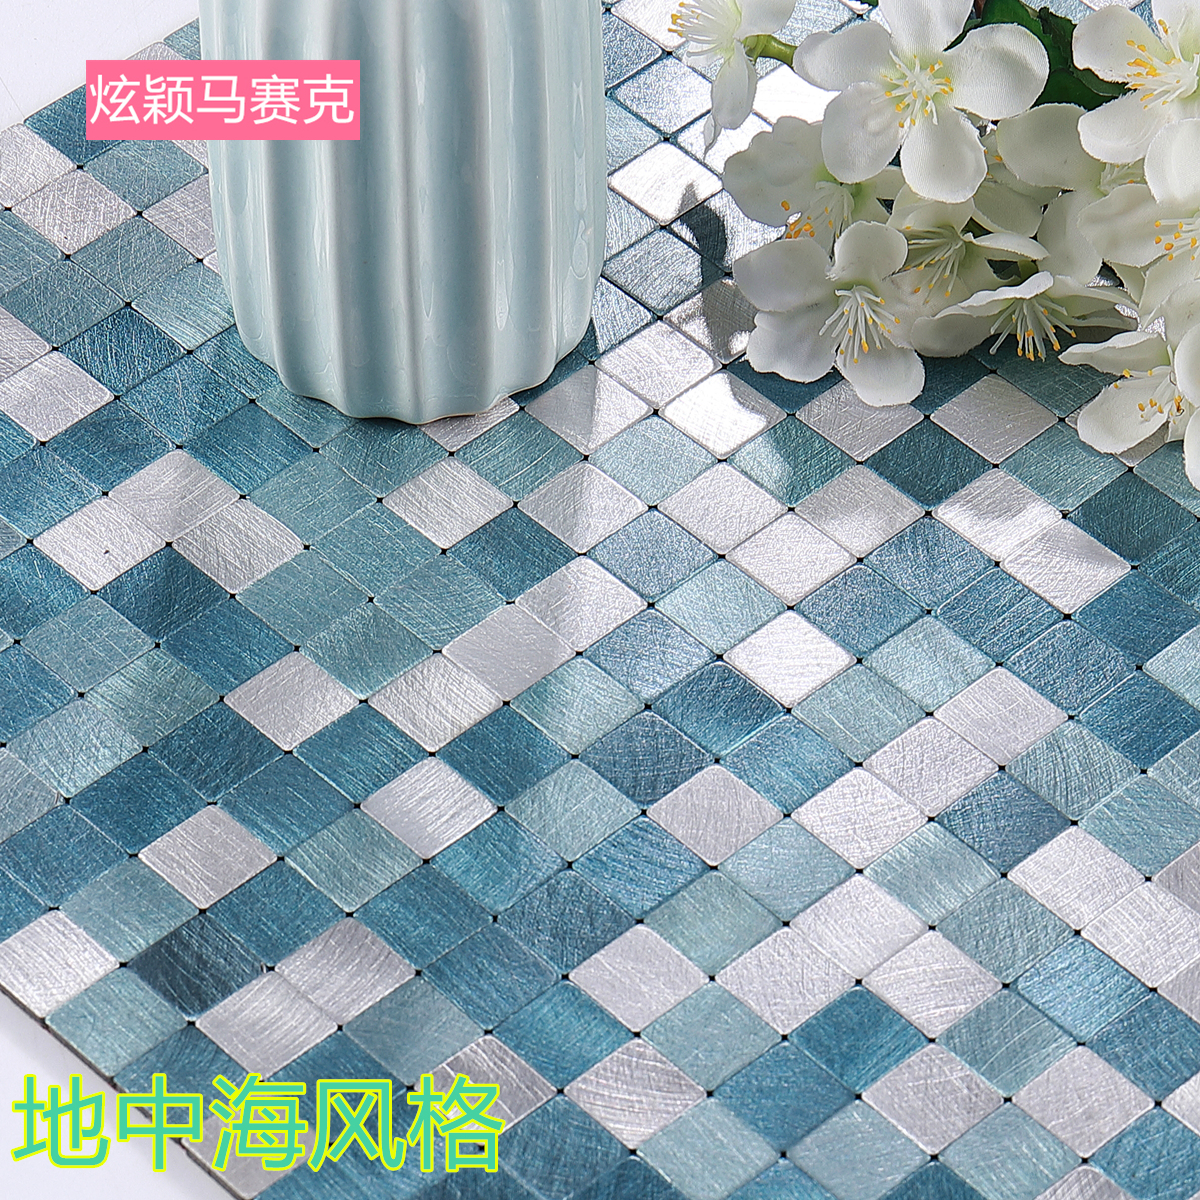 USD 6.78] Metal aluminum mosaic moisture-proof self-adhesive wall ...